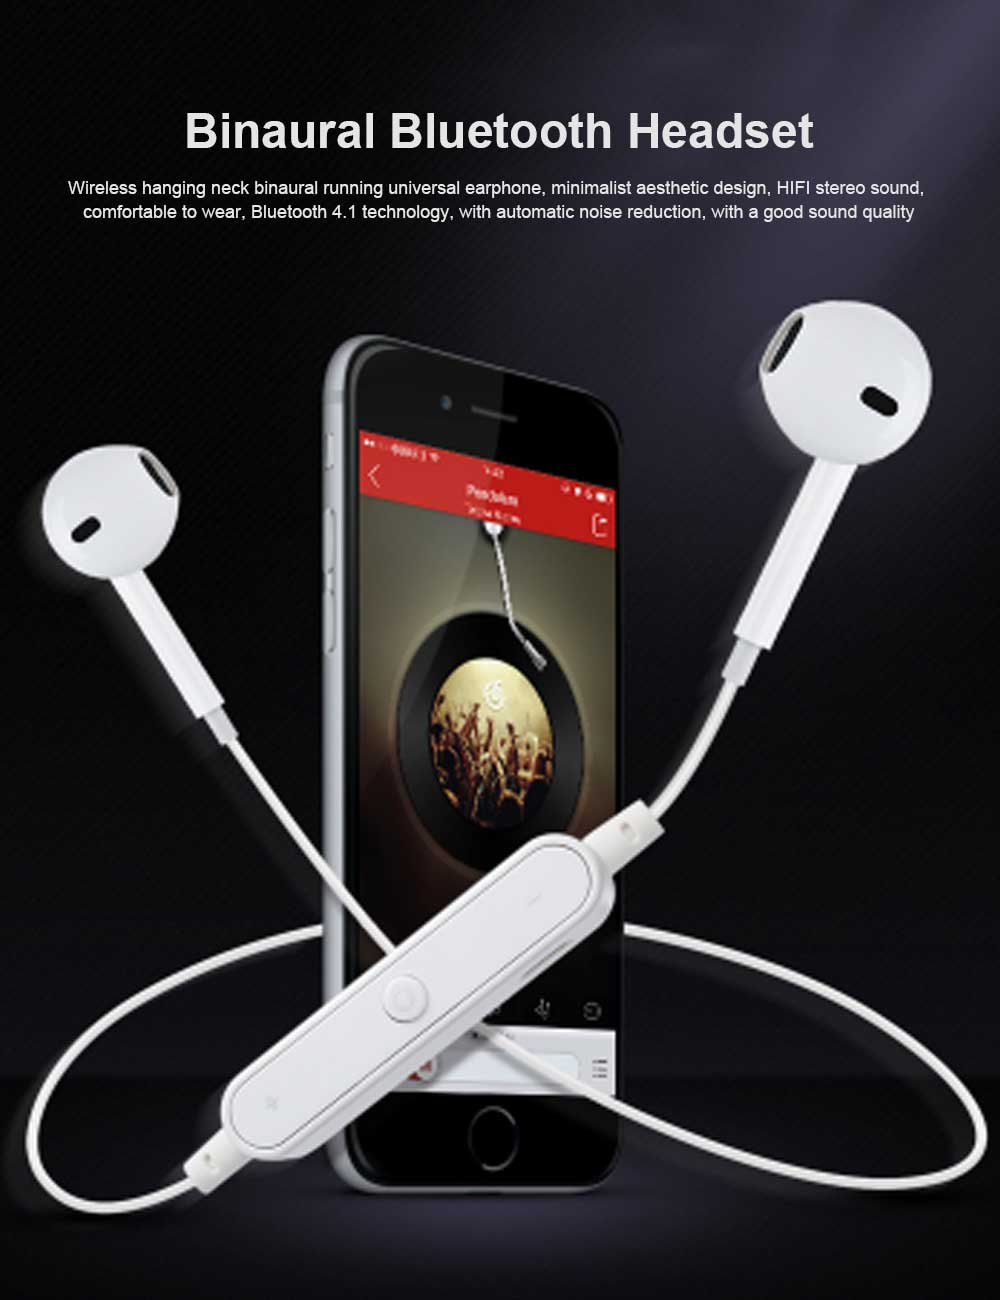 Binaural Running Universal Earphone, Wireless Hanging Neck Earphone, Charging Bluetooth Earphone 0